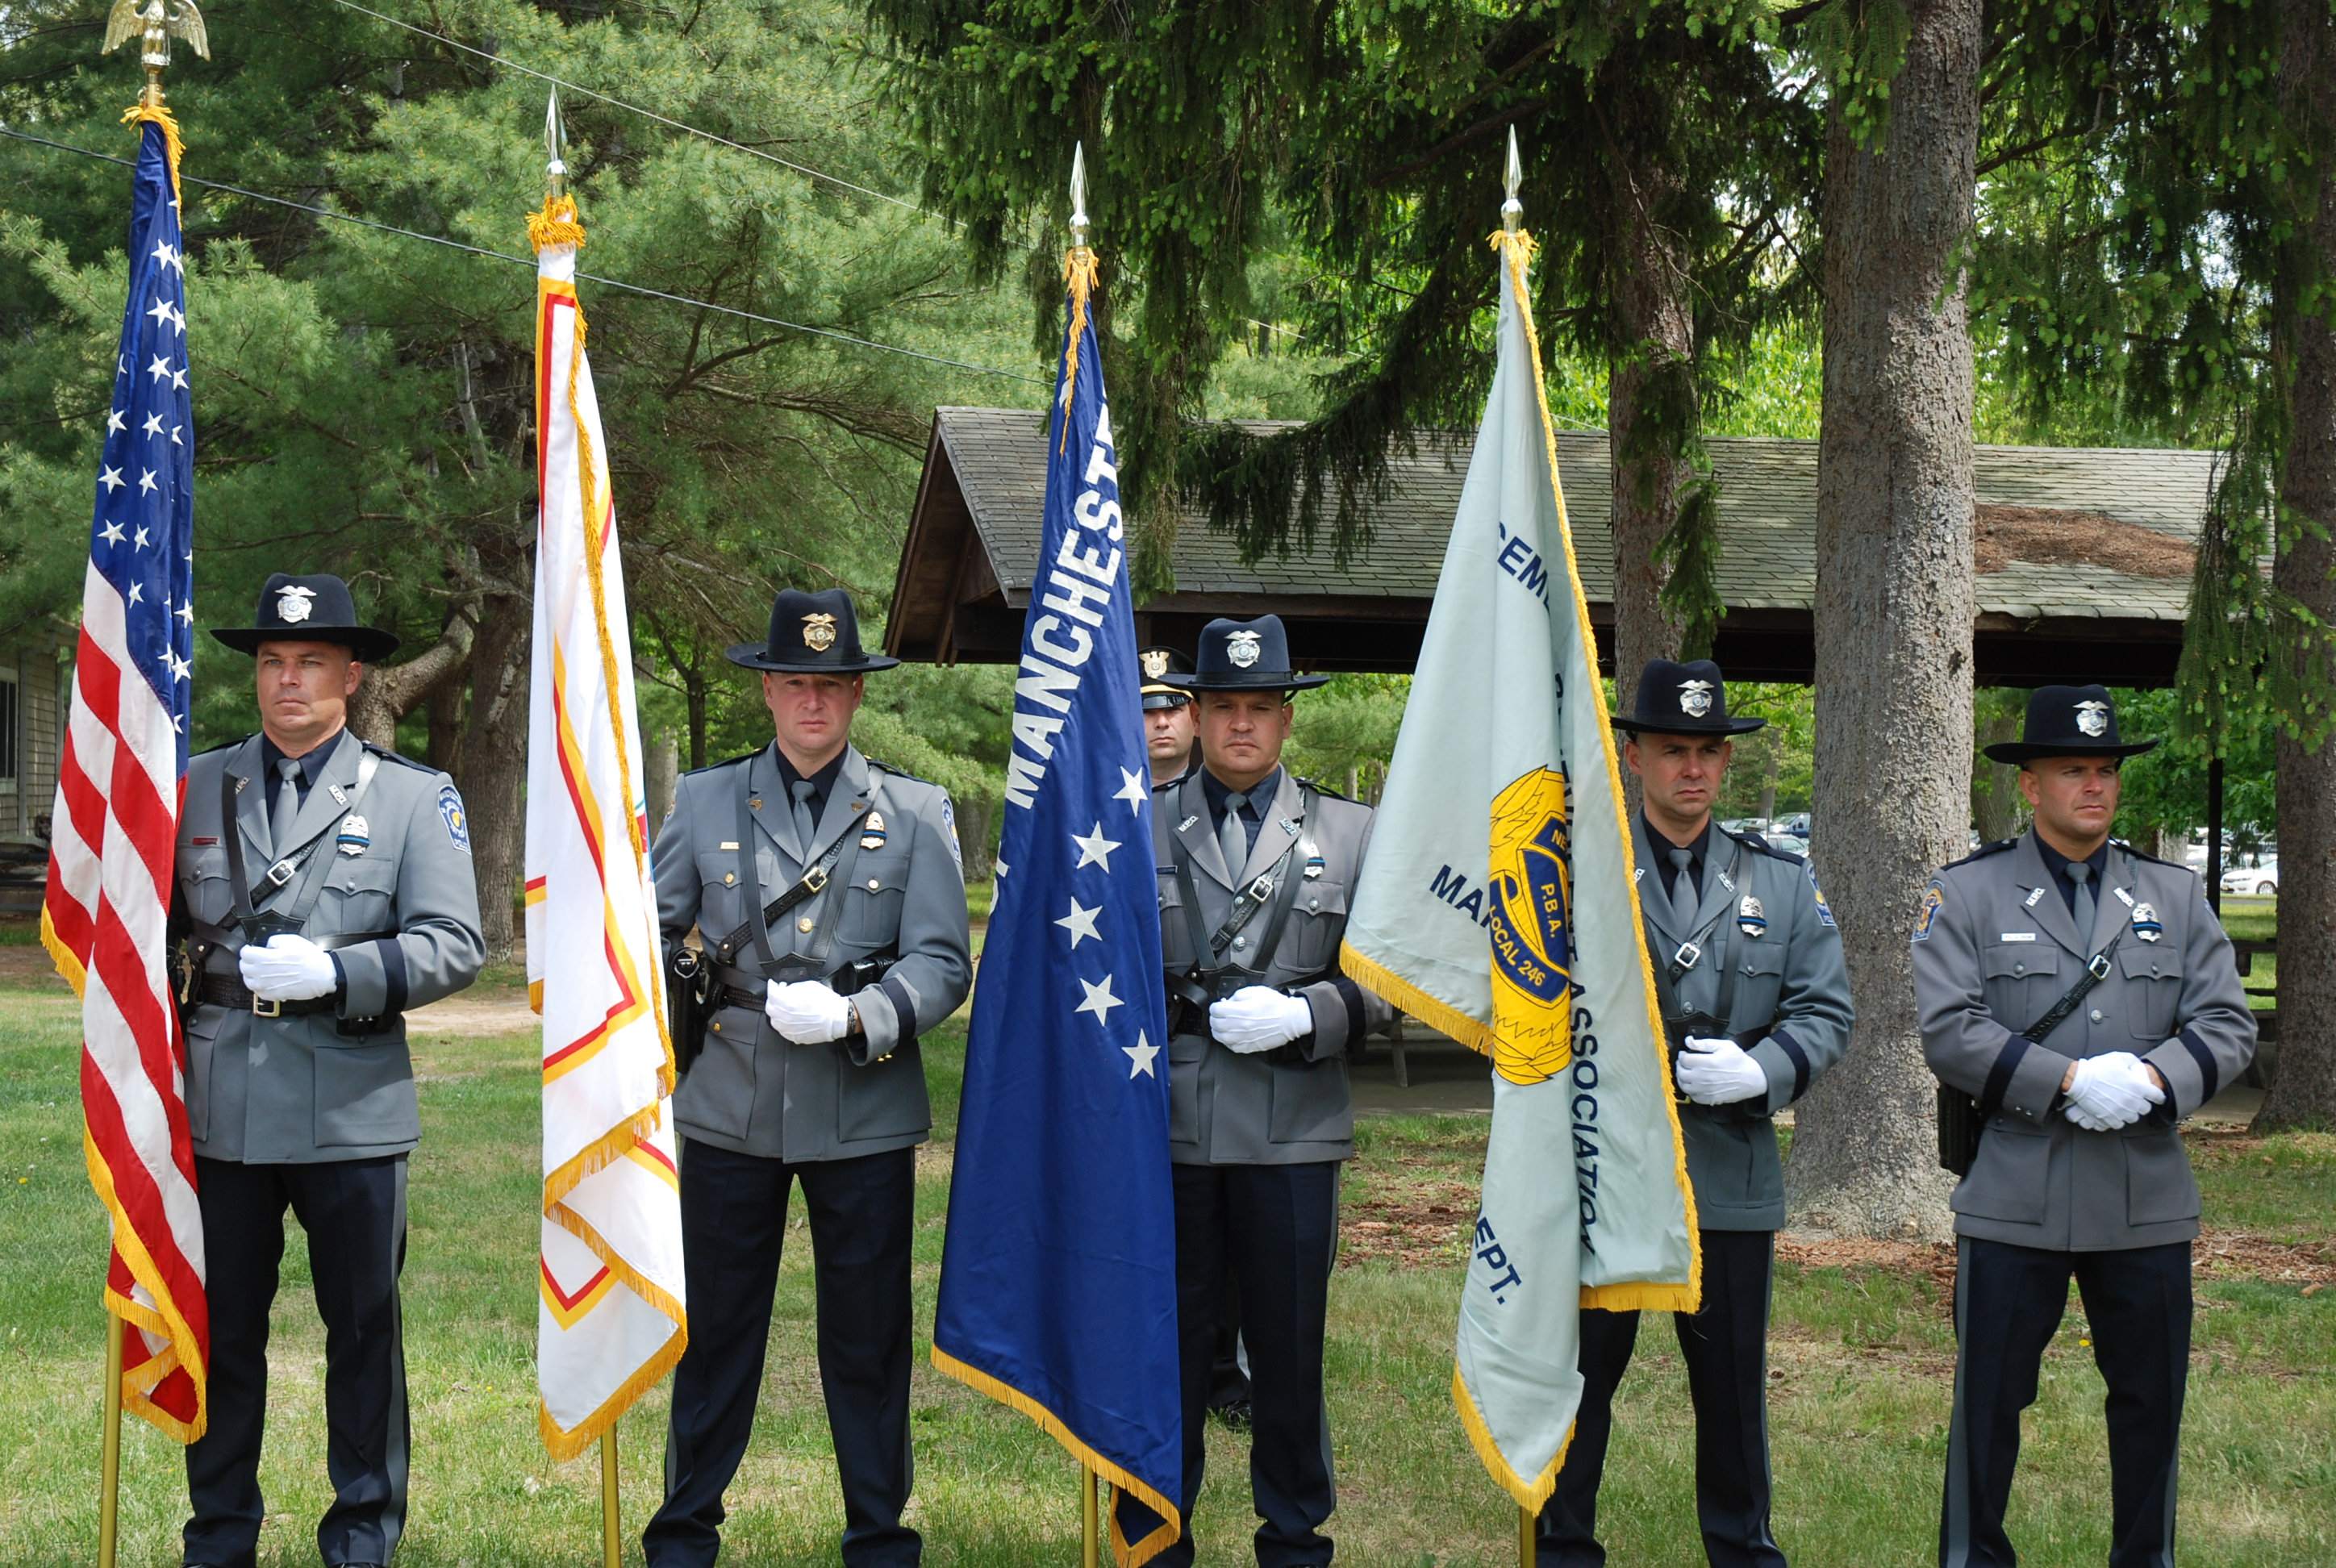 Honor Guard #2